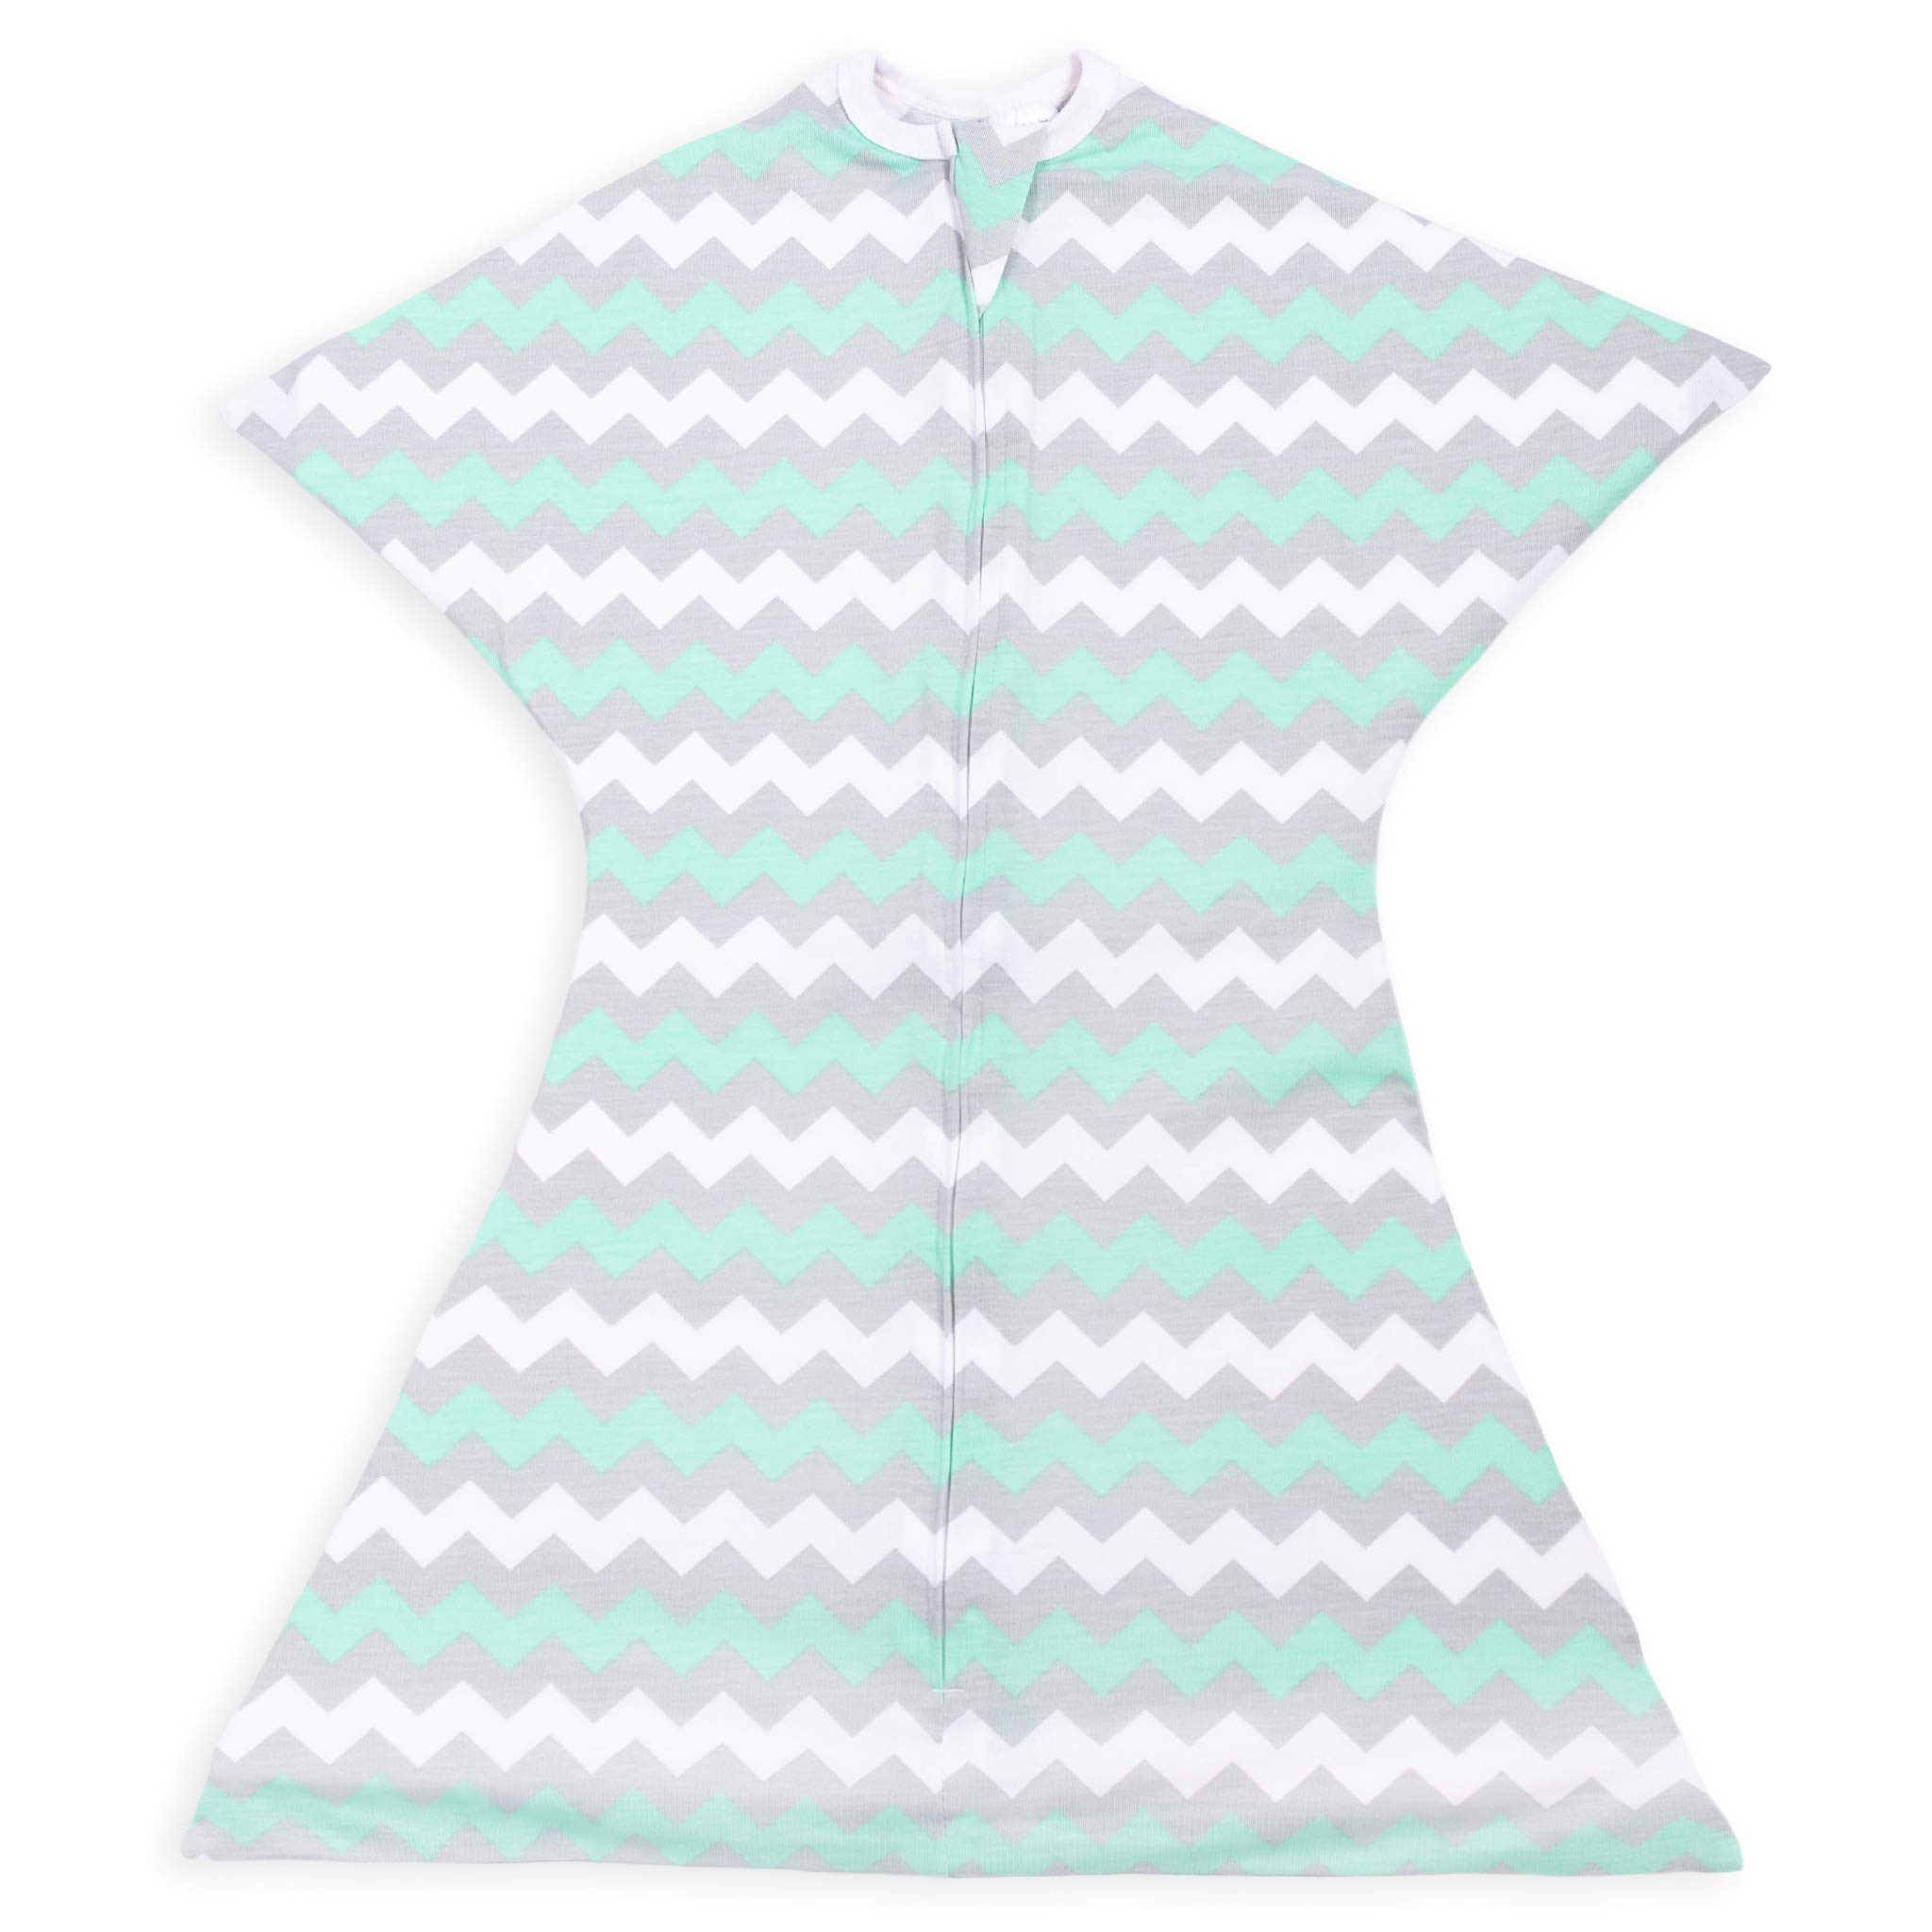 SleepingBaby Chevron Zipadee-Zip Swaddle Transition Baby Swaddle Blanket with Zipper, Comforting Cozy Baby Swaddle Wrap and Baby Sleep Sack (Small 4-8 Months   12-19 lbs, 25-29 inches   Chevron Mint) by SleepingBaby